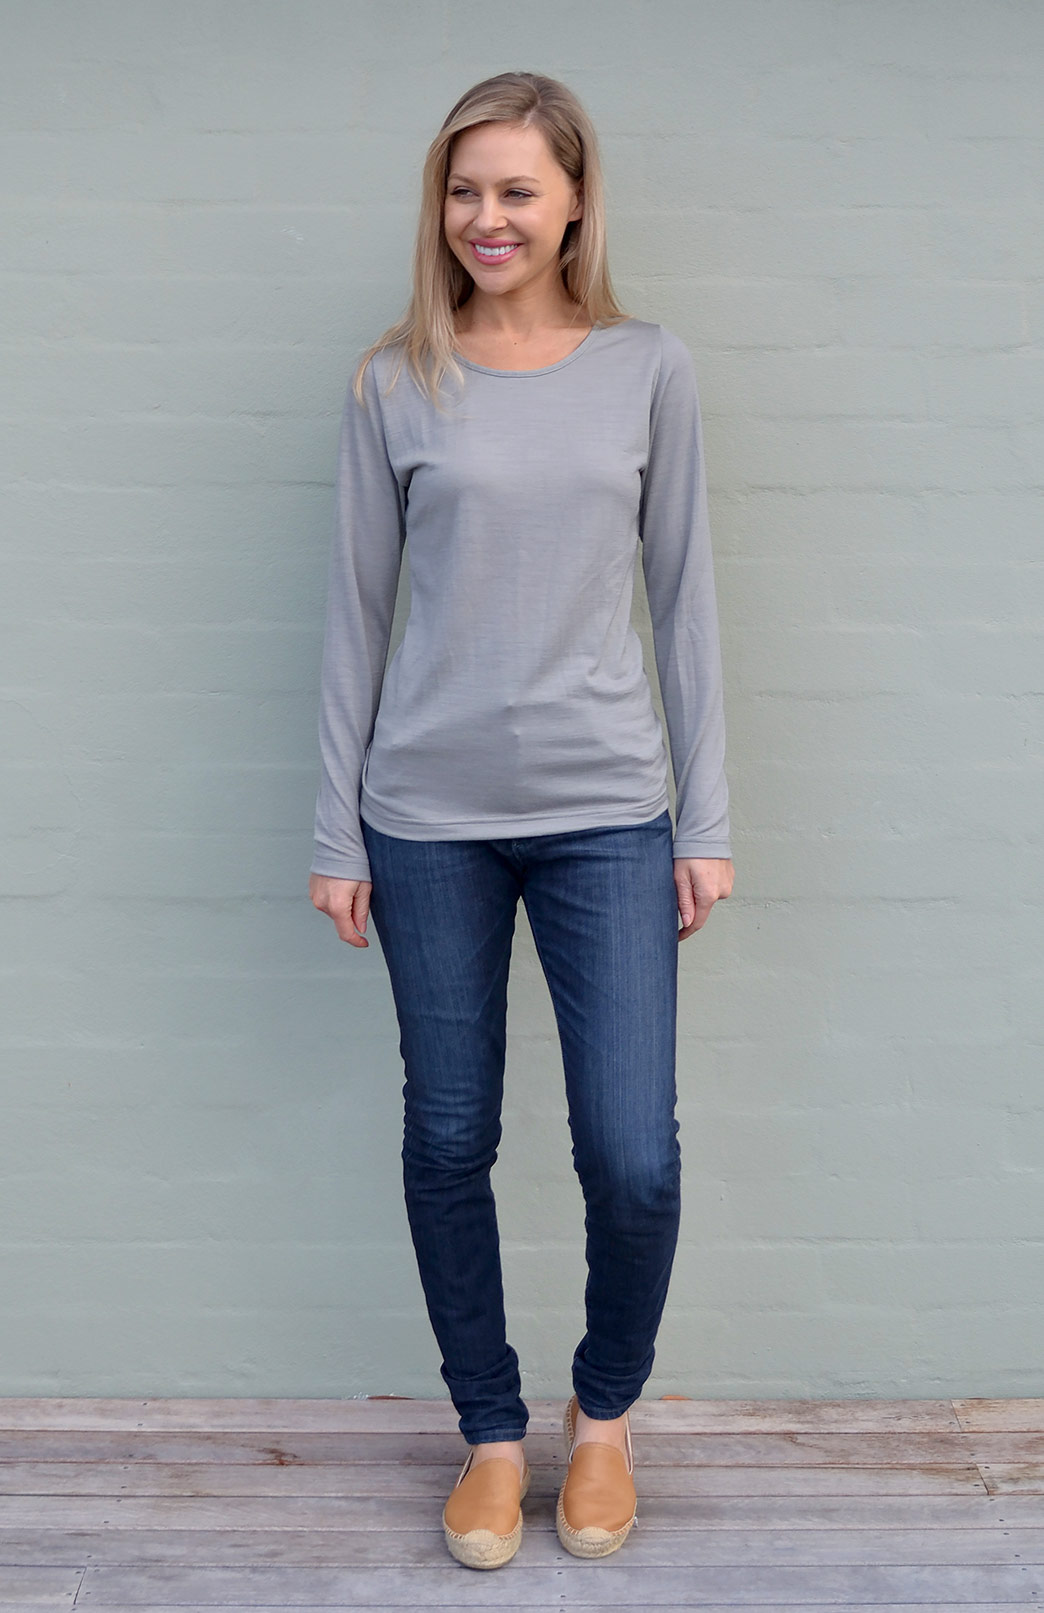 Round Neck Top - Plain - Women's Soft Tan Long Sleeved Merino Wool Thermal Top - Smitten Merino Tasmania Australia